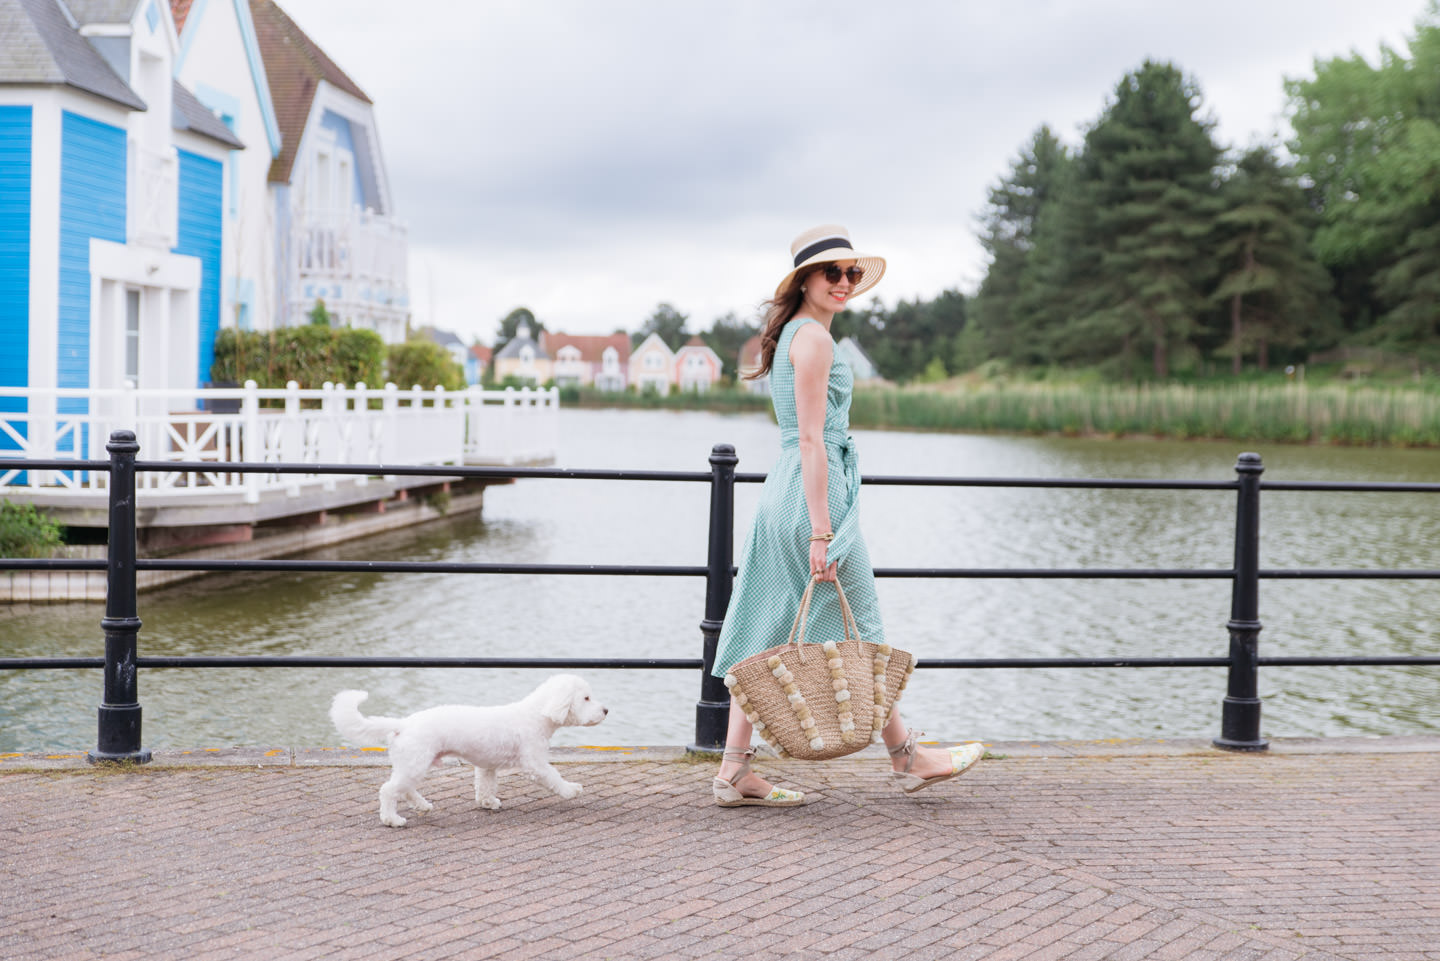 Blog-Mode-And-The-City-Lifestyle-Sortir-Voyager-Son-chien02